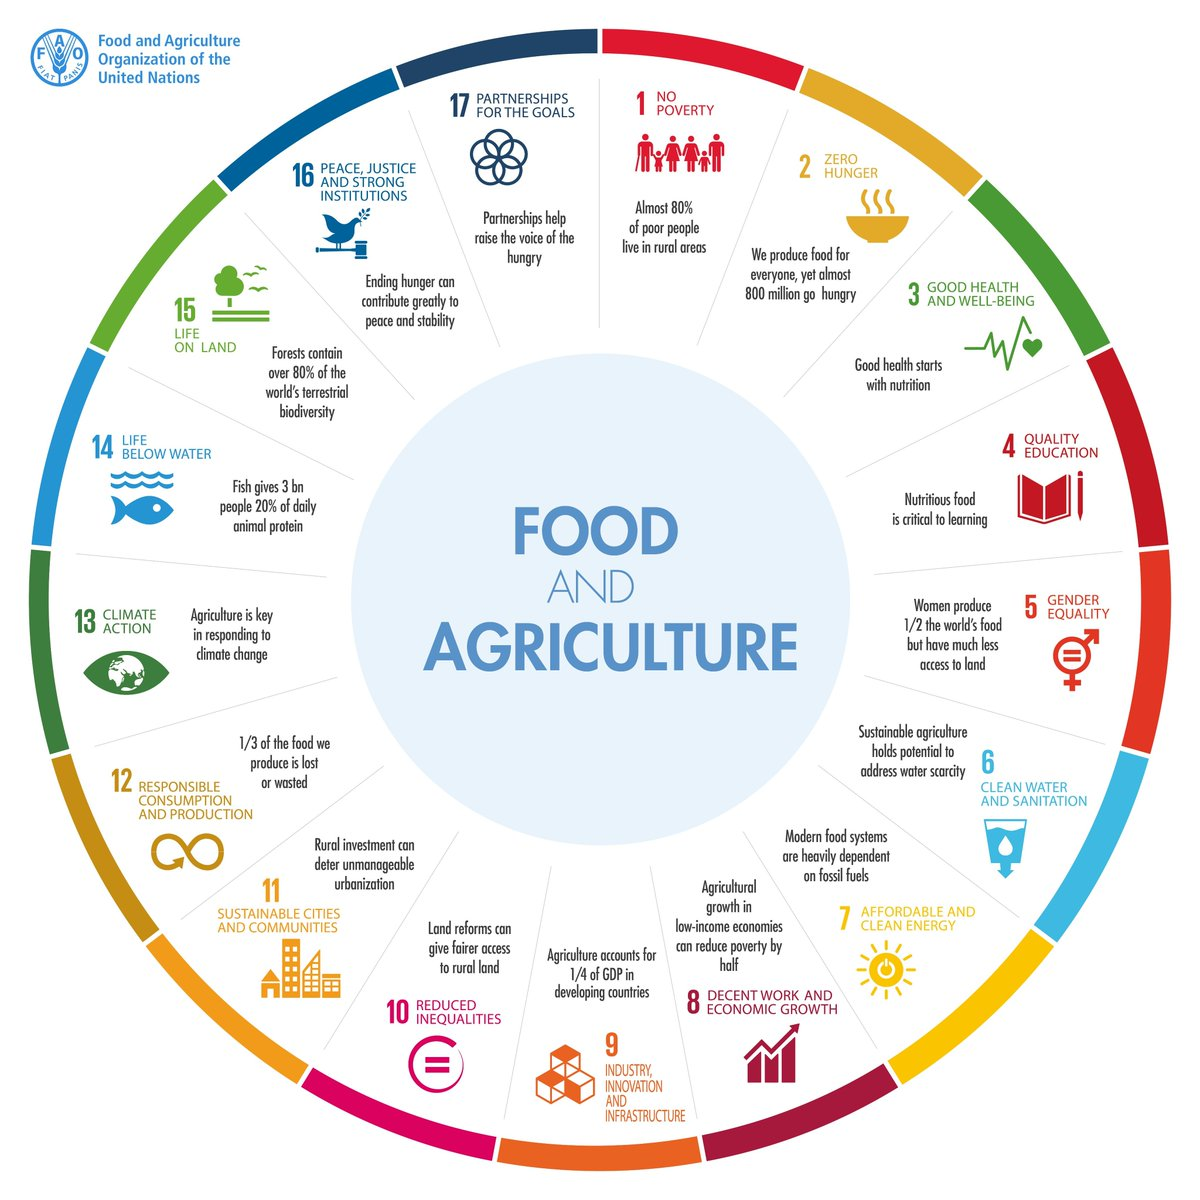 Food and agriculture are at the heart of the #SDGs https://t.co/2cjHc6ErwZ